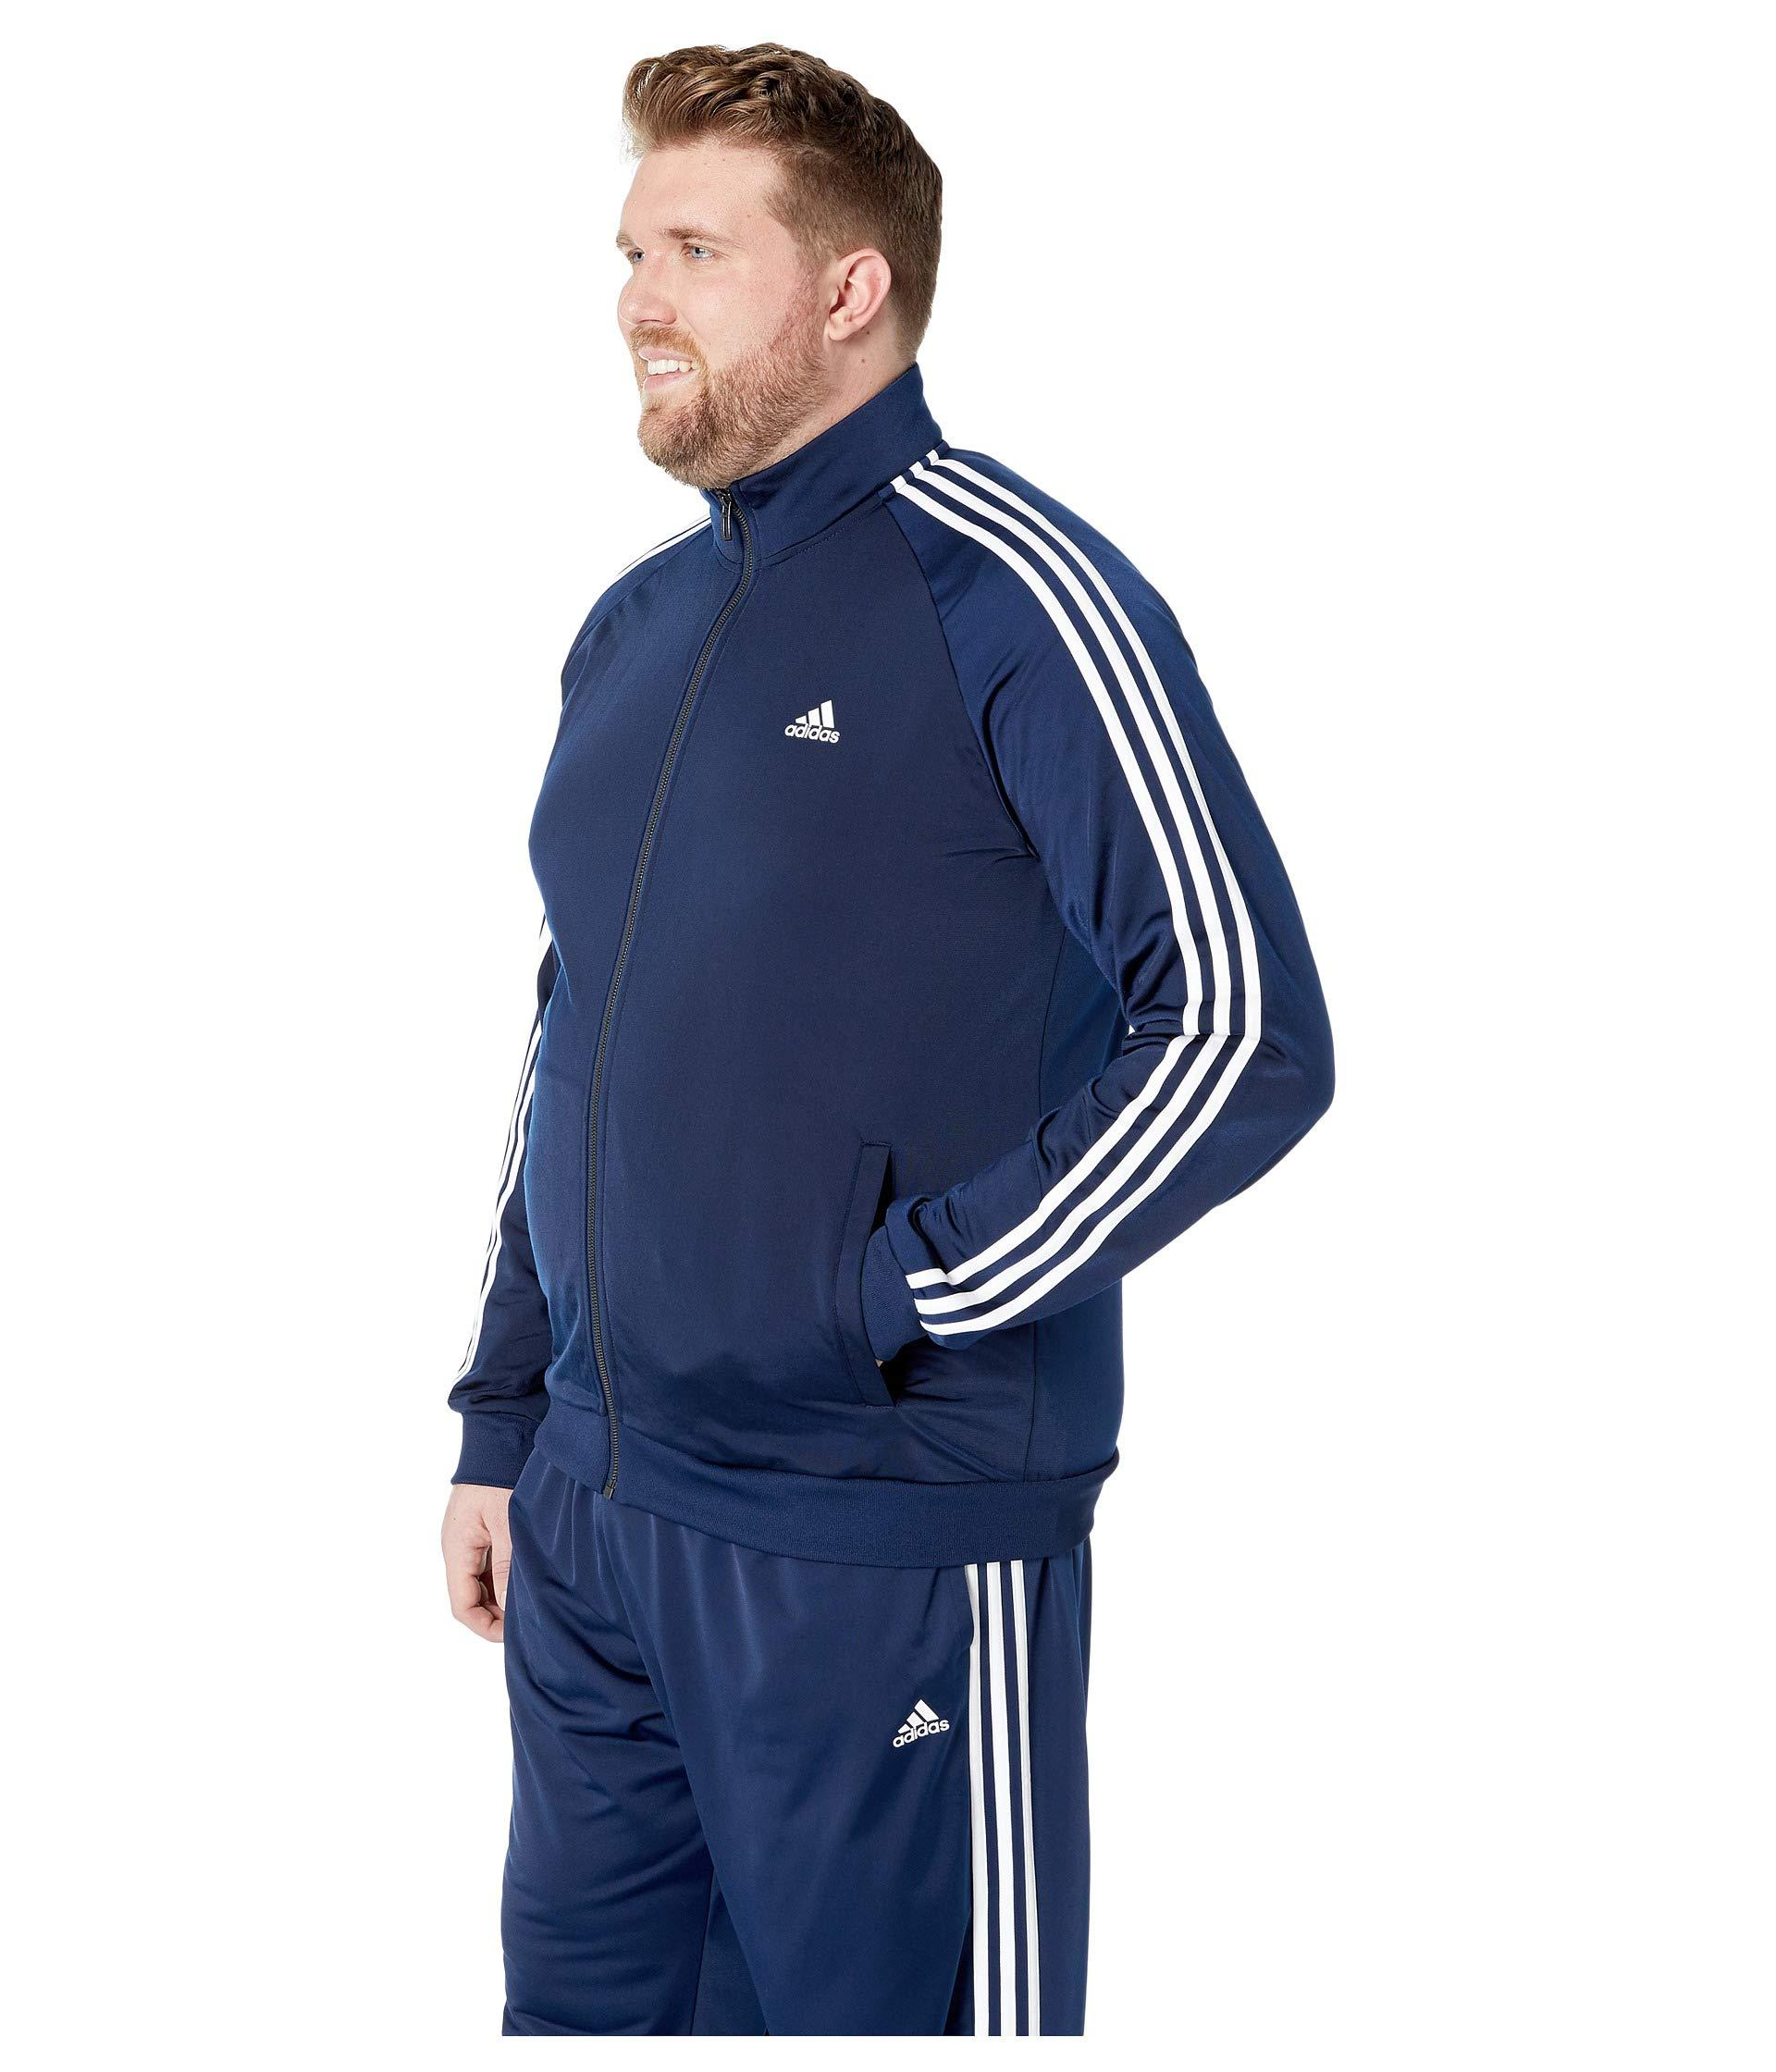 7dabed92114f Lyst - adidas Big   Tall Essentials 3-stripes Tricot Track Jacket in Blue  for Men